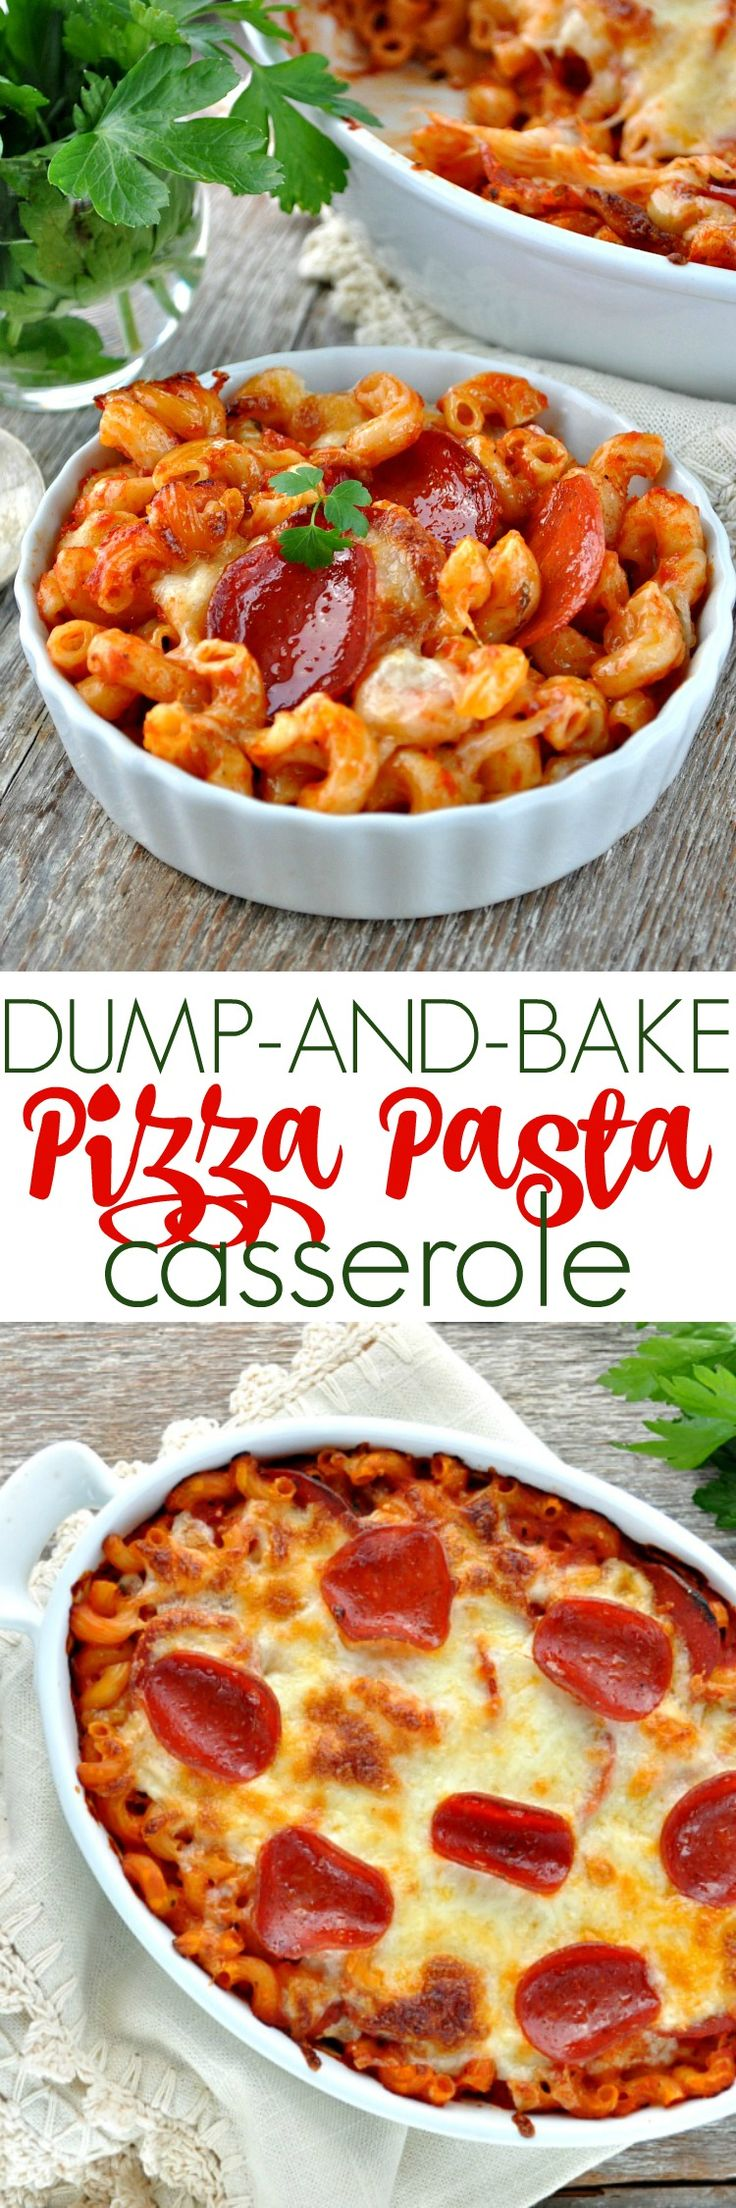 ***Dinner doesn't get any easier! No boiling the pasta and just 5 ingredients for this family-friendly comfort food: Dump and Bake Pizza Pasta Casserole! #ad